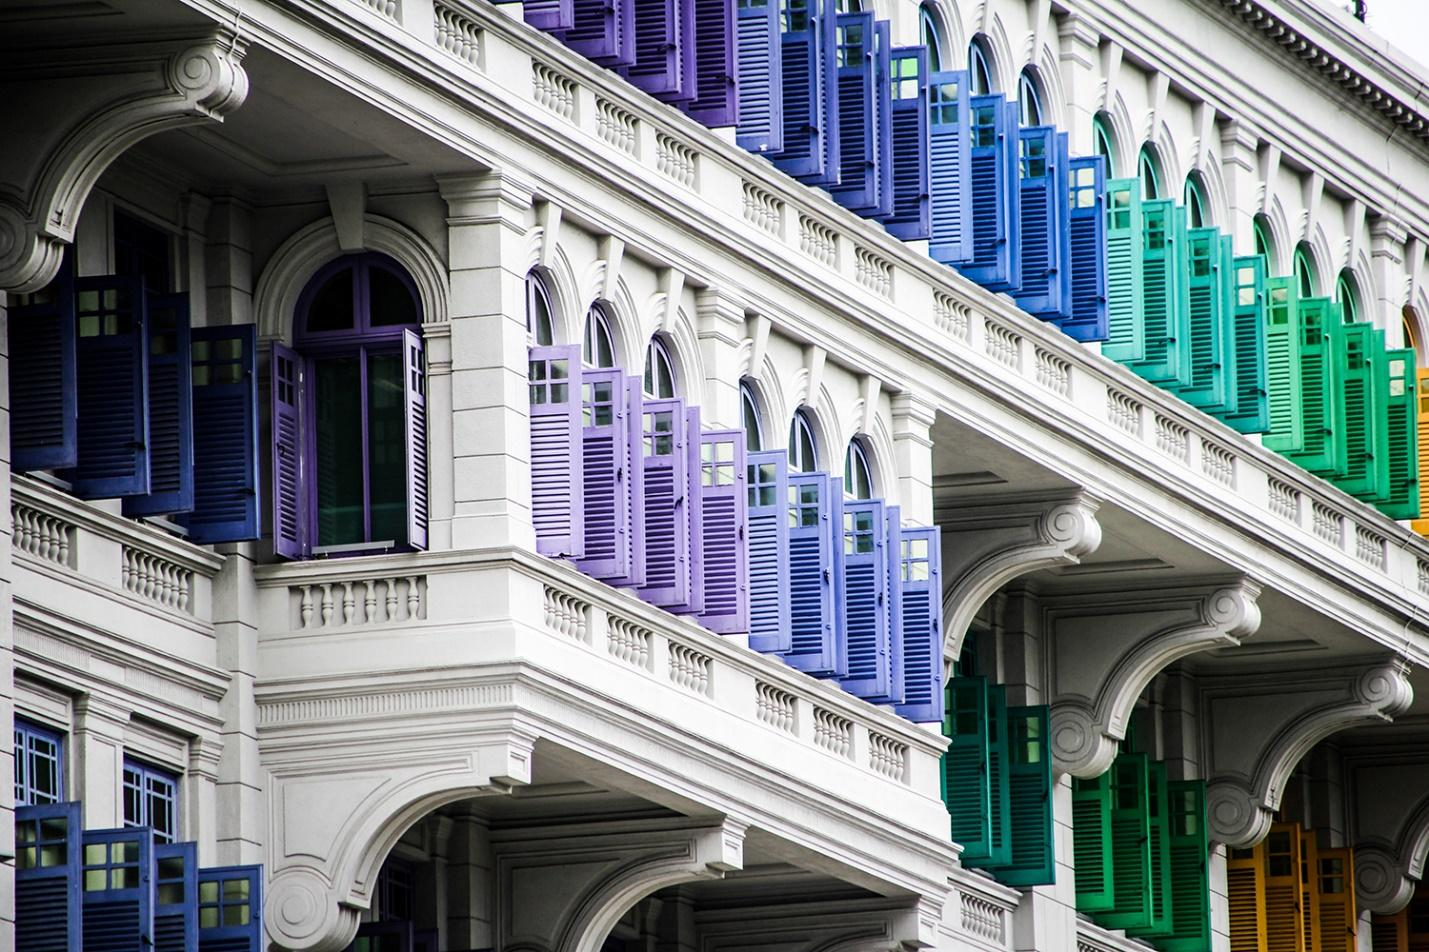 Colorful window shutters on a multistory building creating a rainbow effect.